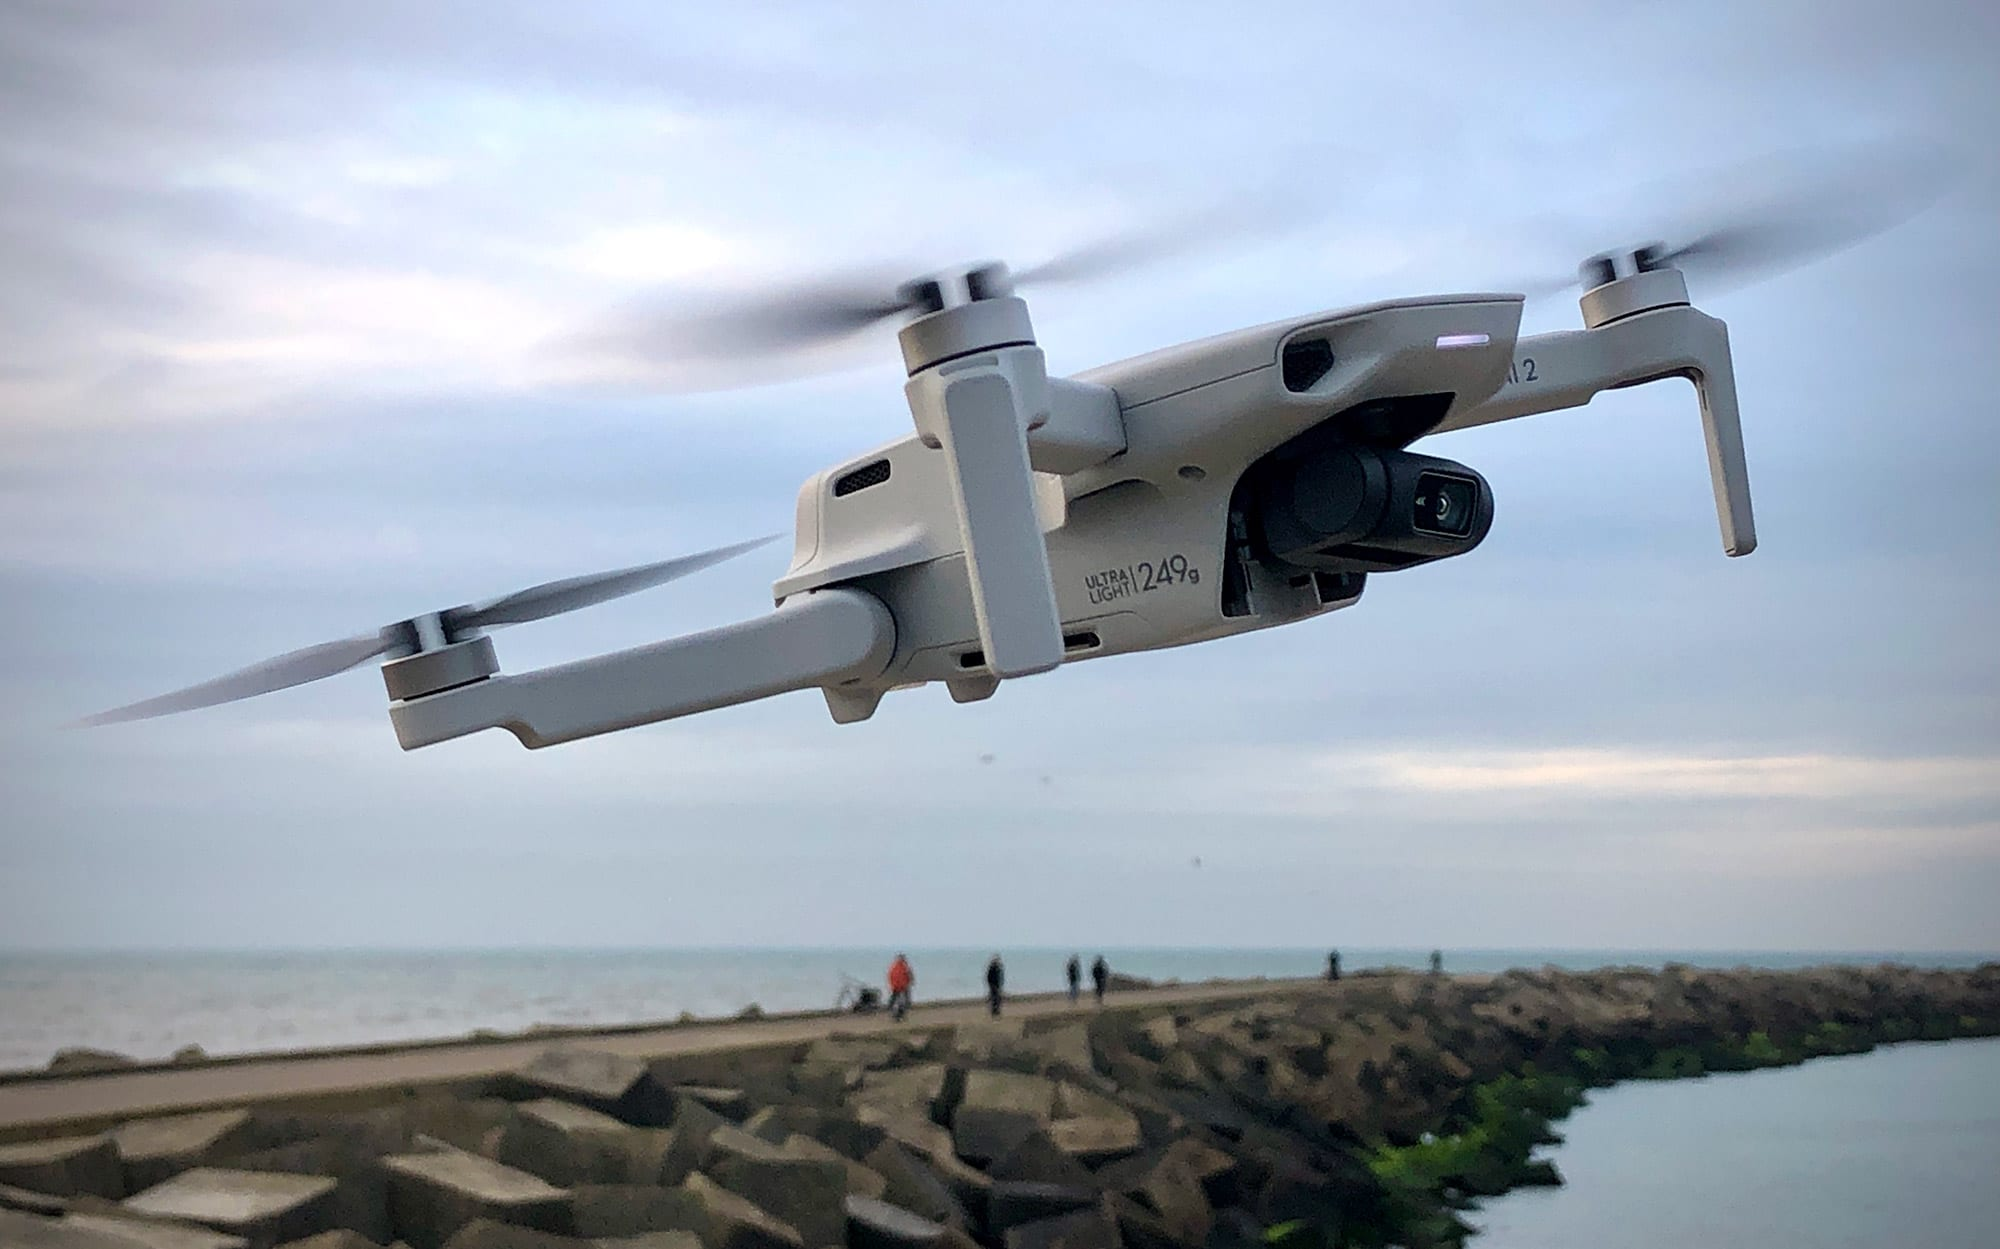 DJI Mini 2 review: less is more in windy conditions